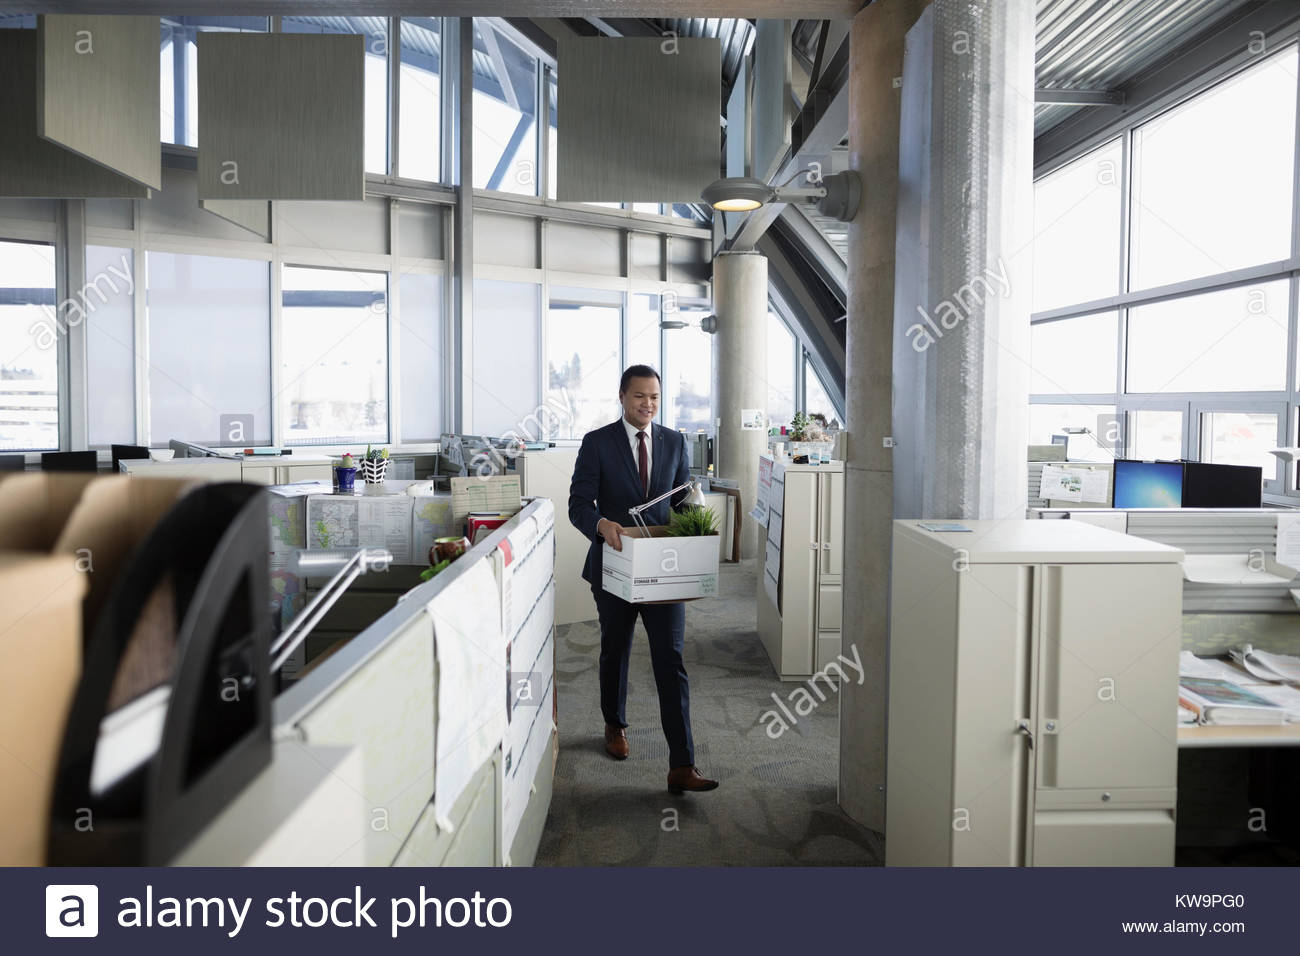 Businessman being laid off,carrying box of belongings in office - Stock Image